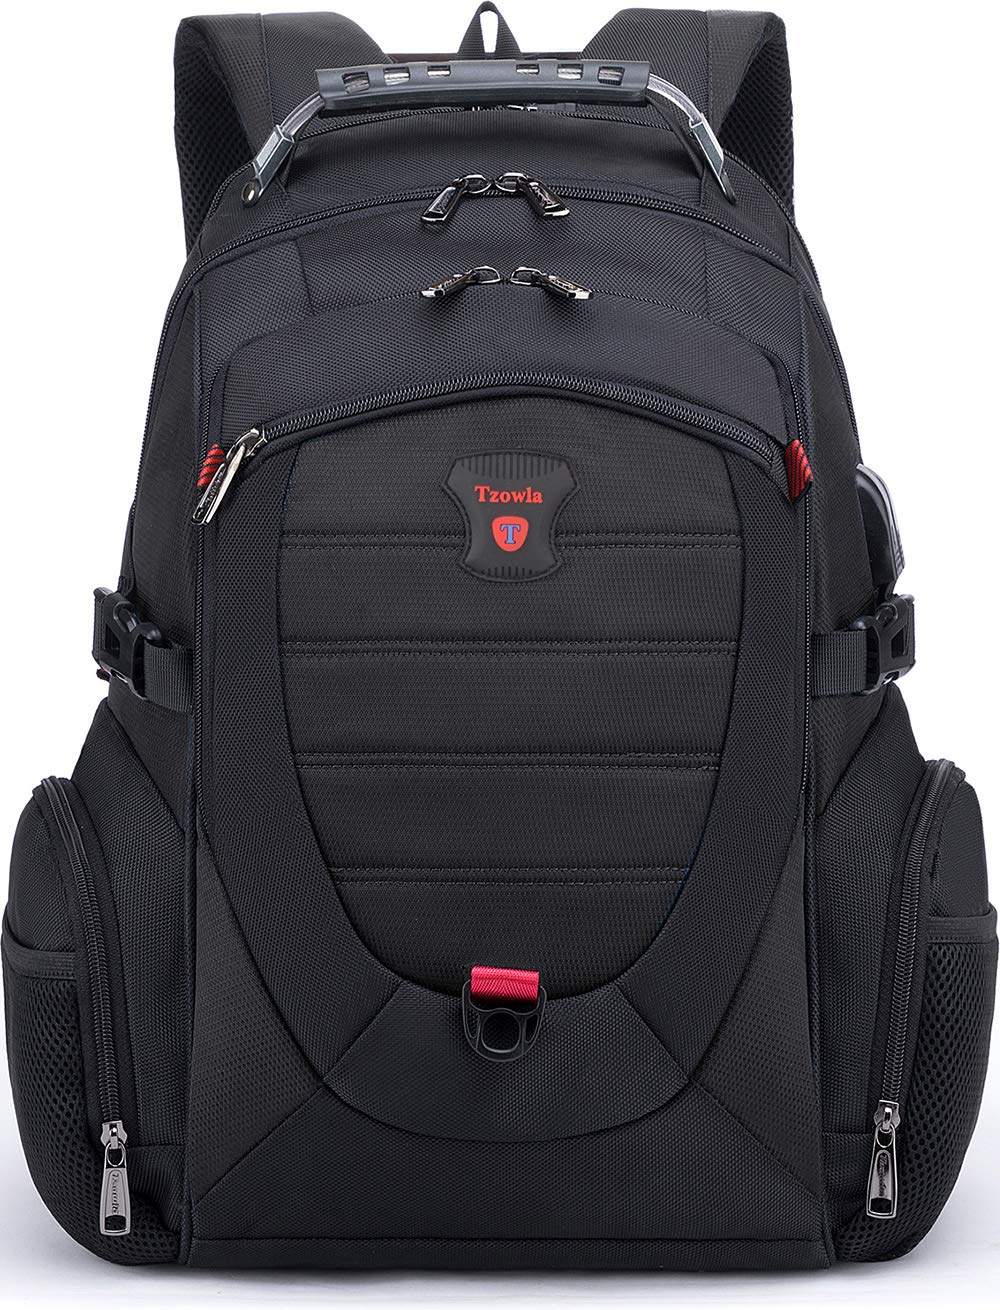 Tzowla Travel Laptop Backpack,Anti-Theft Water Resistant Business Luggage with TSA Lock USB Charging Port Friendly Computer Cooler Daypack for Men Women College School Bag Fit 16 17 inch Laptop Black